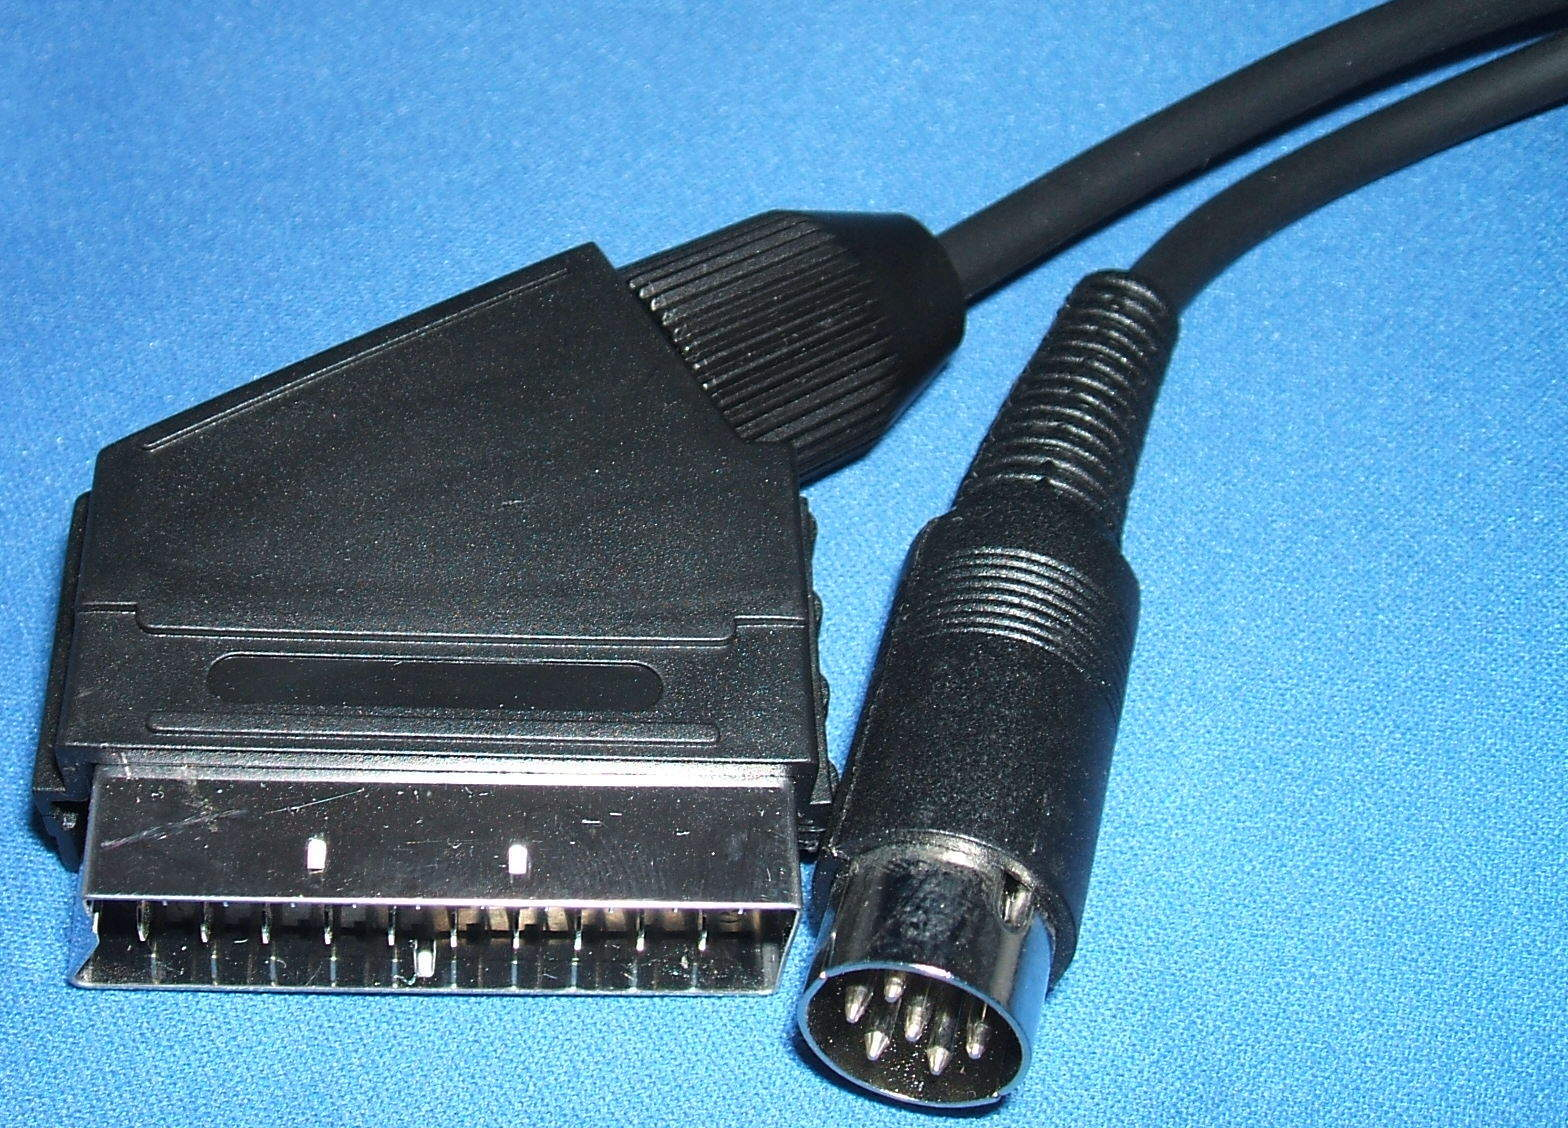 5m Monitor Lead/Cable for Acorn BBC B Micro 6Pin DIN to TV/Monitor ...